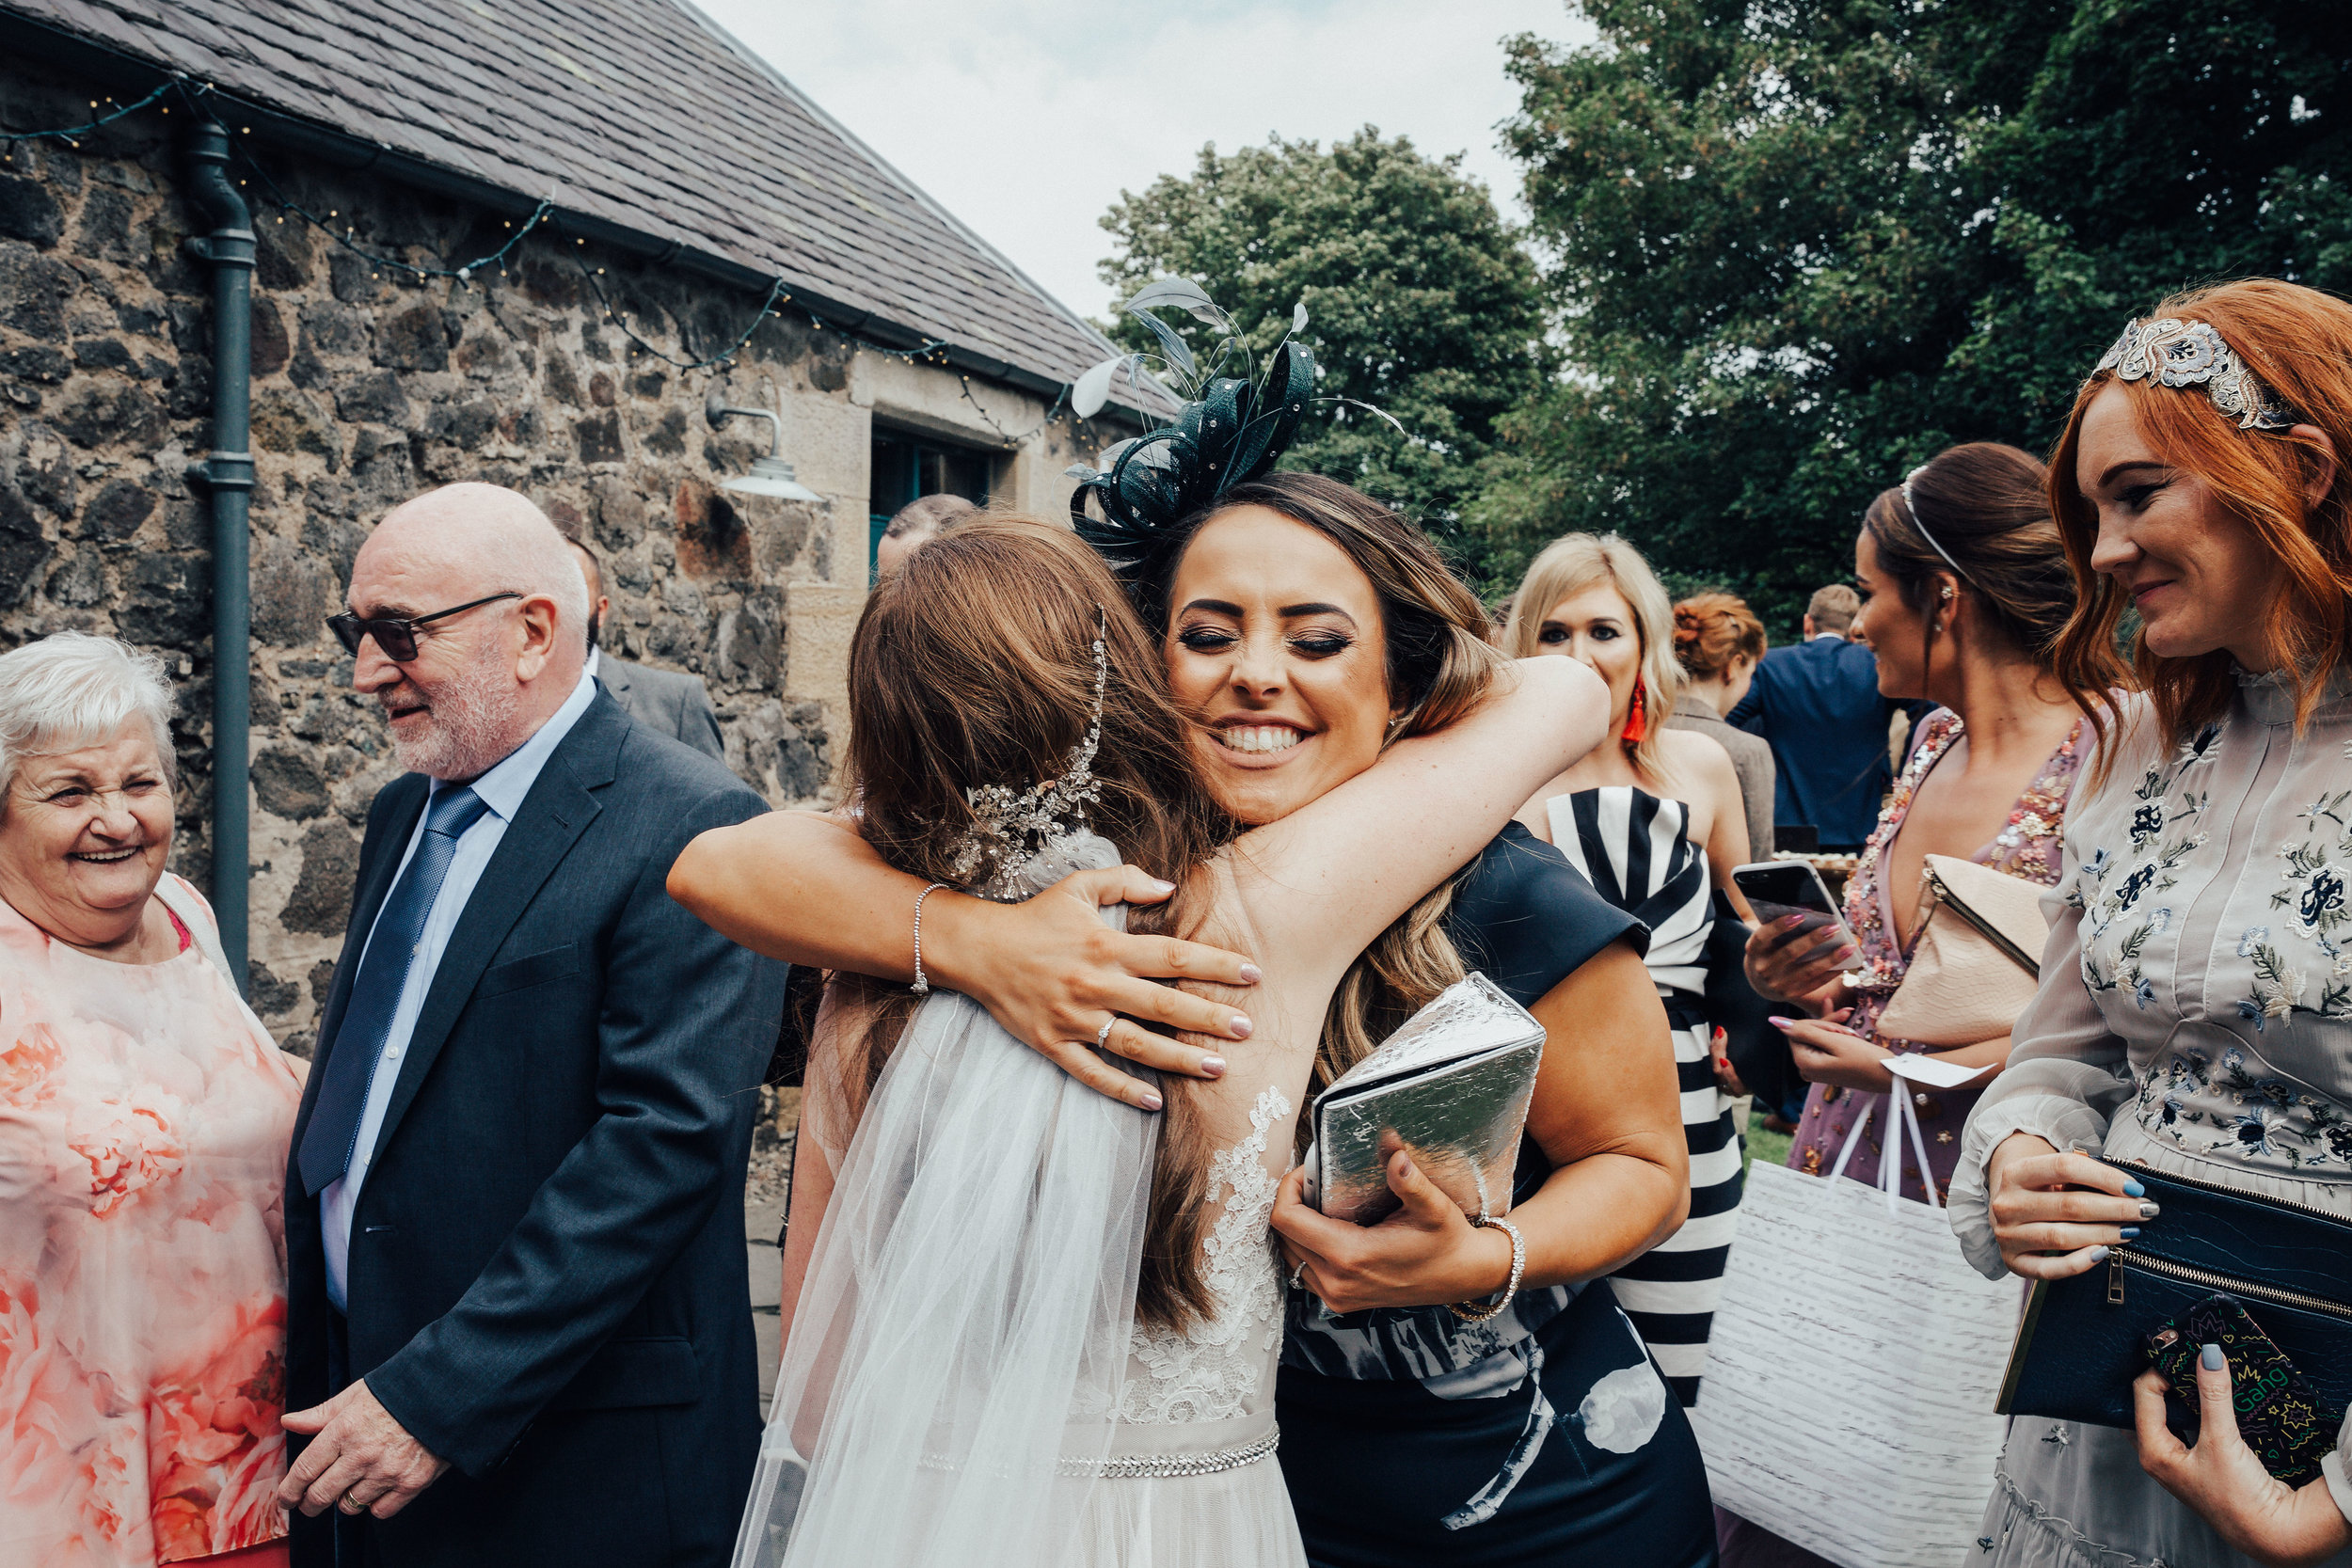 BYRE_AT_INCHYRA_WEDDING_PHOTOGRAPHER_PJ_PHILLIPS_PHOTOGRAPHY_KAYLEIGH_ANDREW_99.jpg